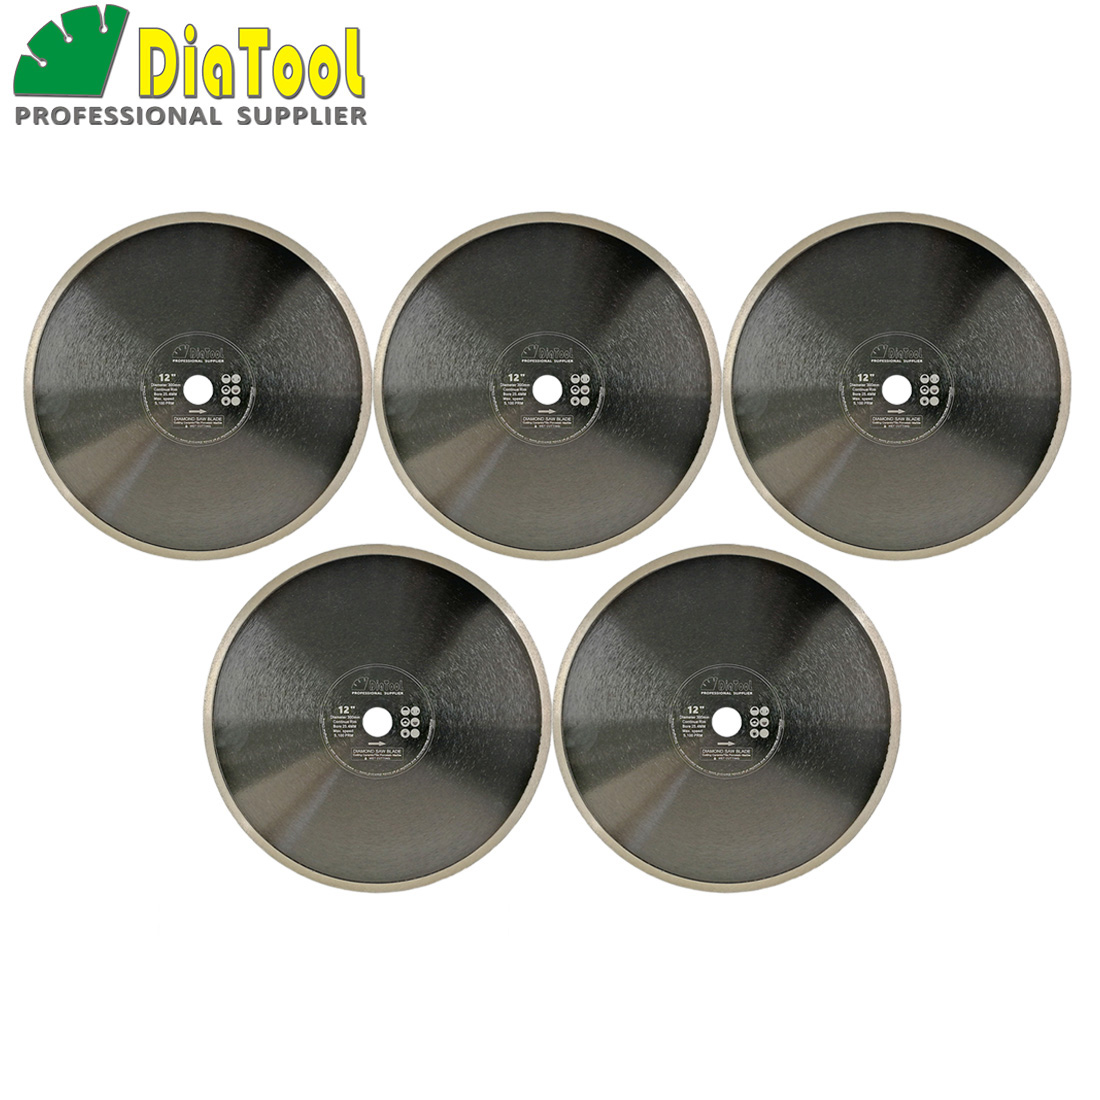 DIATOOL 5pcs Dia 12inch Hot-pressed Continue Rim Diamond Blades Cutting Disc 300mm Porcelain Tile Ceramic Marble Saw Blade Wheel diatool 2pcs 4 5 115mm hot pressed continue rim cutting diamond blade ceramic tile sawblade thin cutting disc diamond wheel